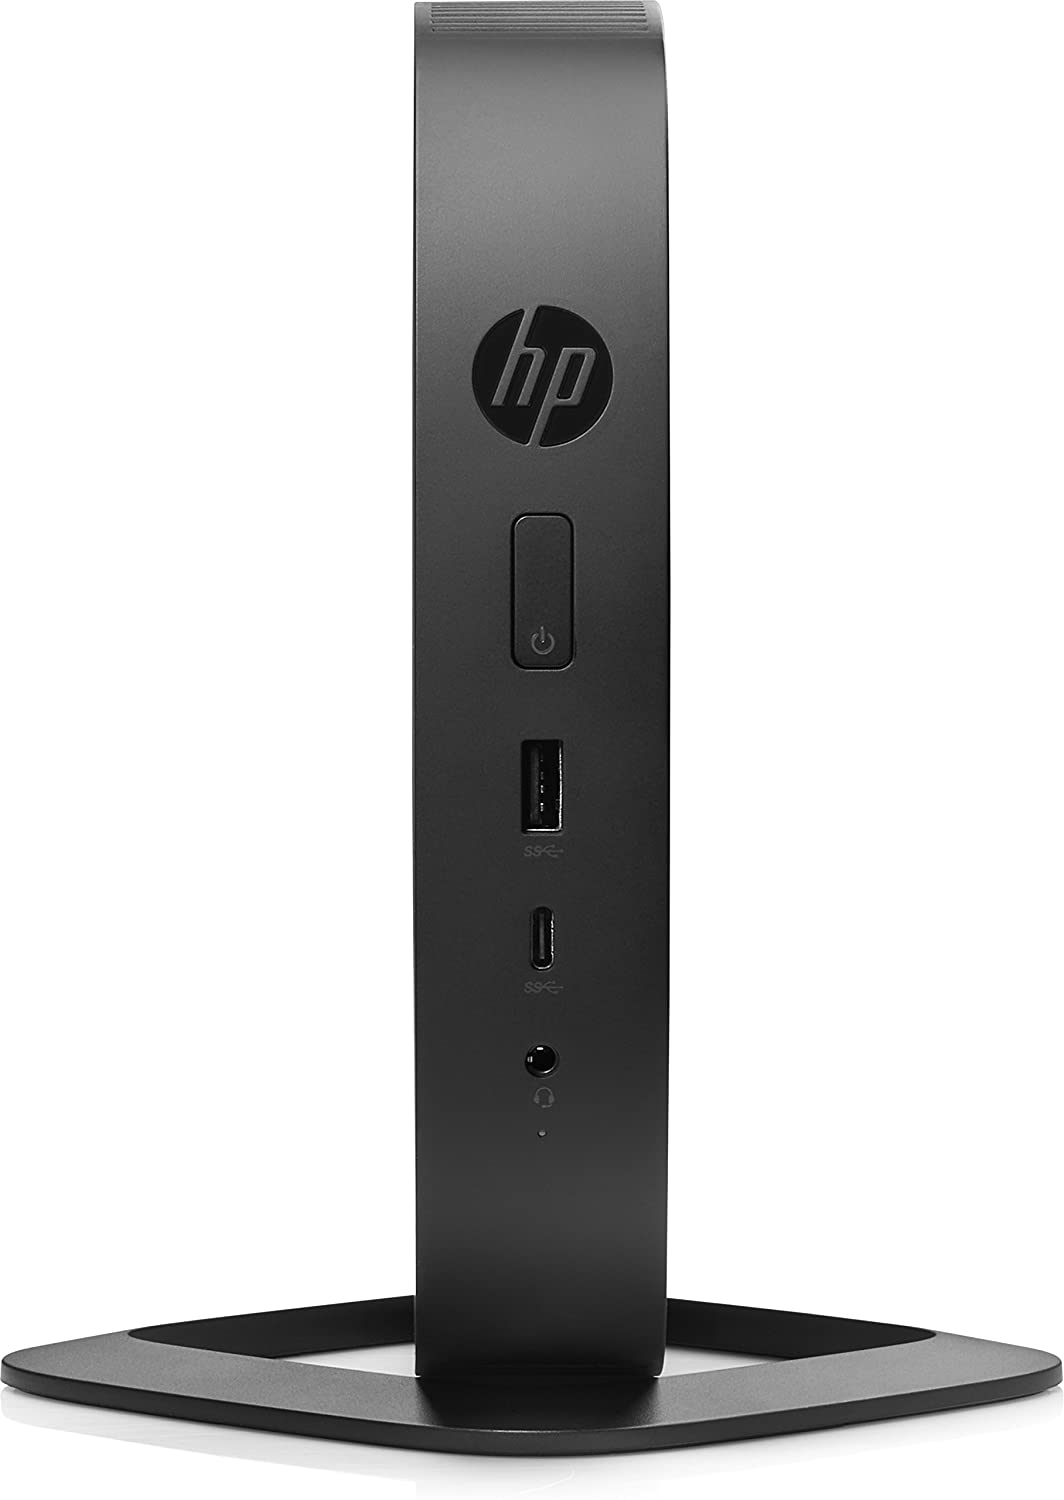 PC HP T530 2RC22EA AMD GX-215JJ/8GB/FLASH 32GB/2xUSB2.0, 3xUSB3.0, 1xUSB-C/2xDP/Windows Embedded Standard 7E